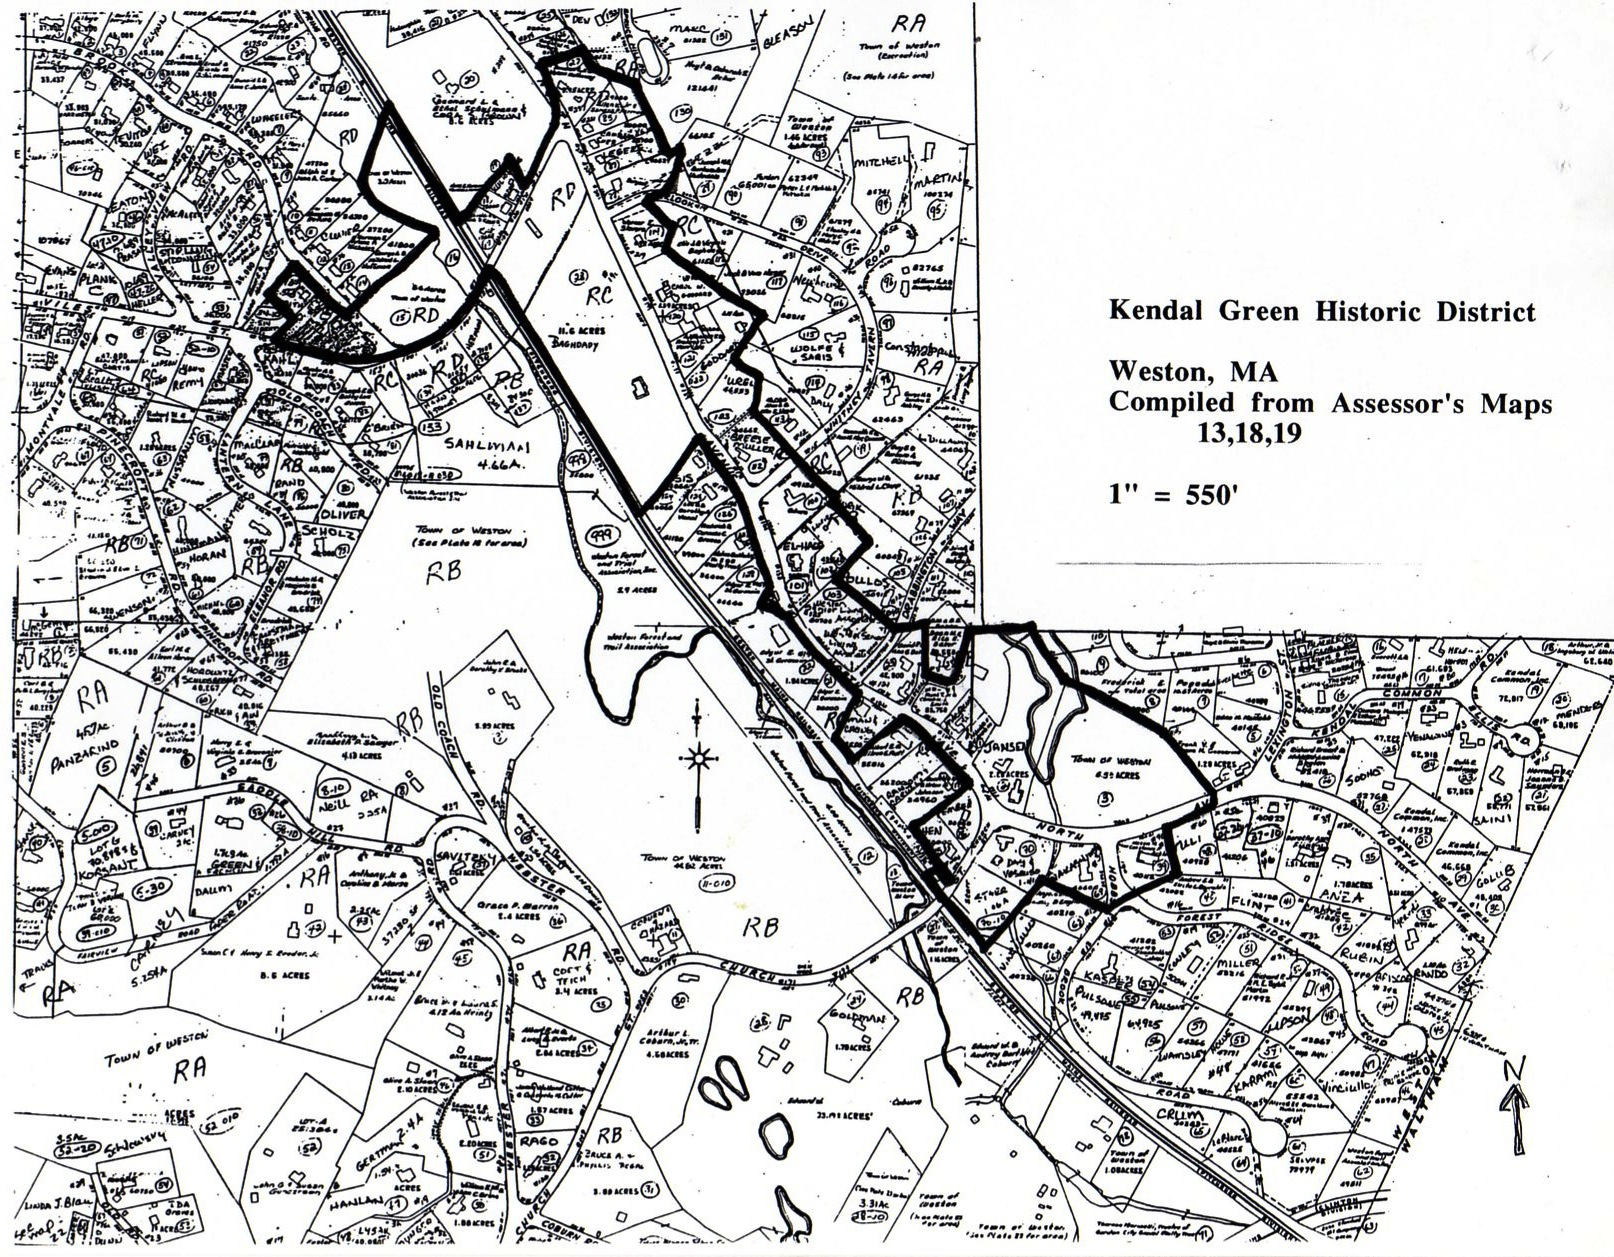 Kendal Green Historic District Map